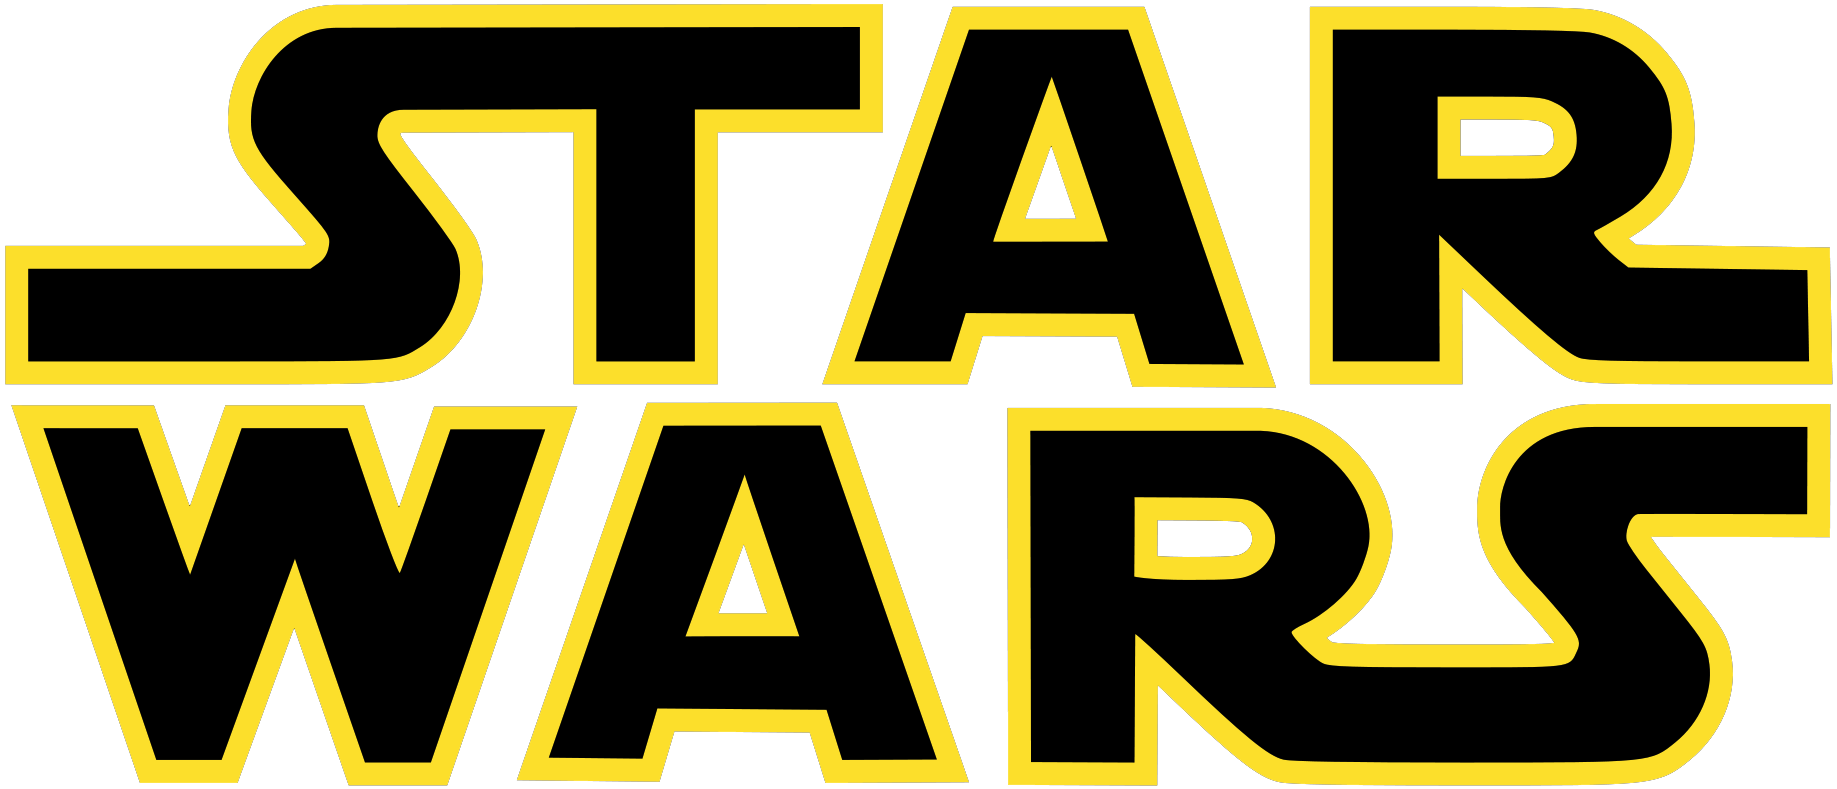 Starwars-logo.png - PNG Star Wars